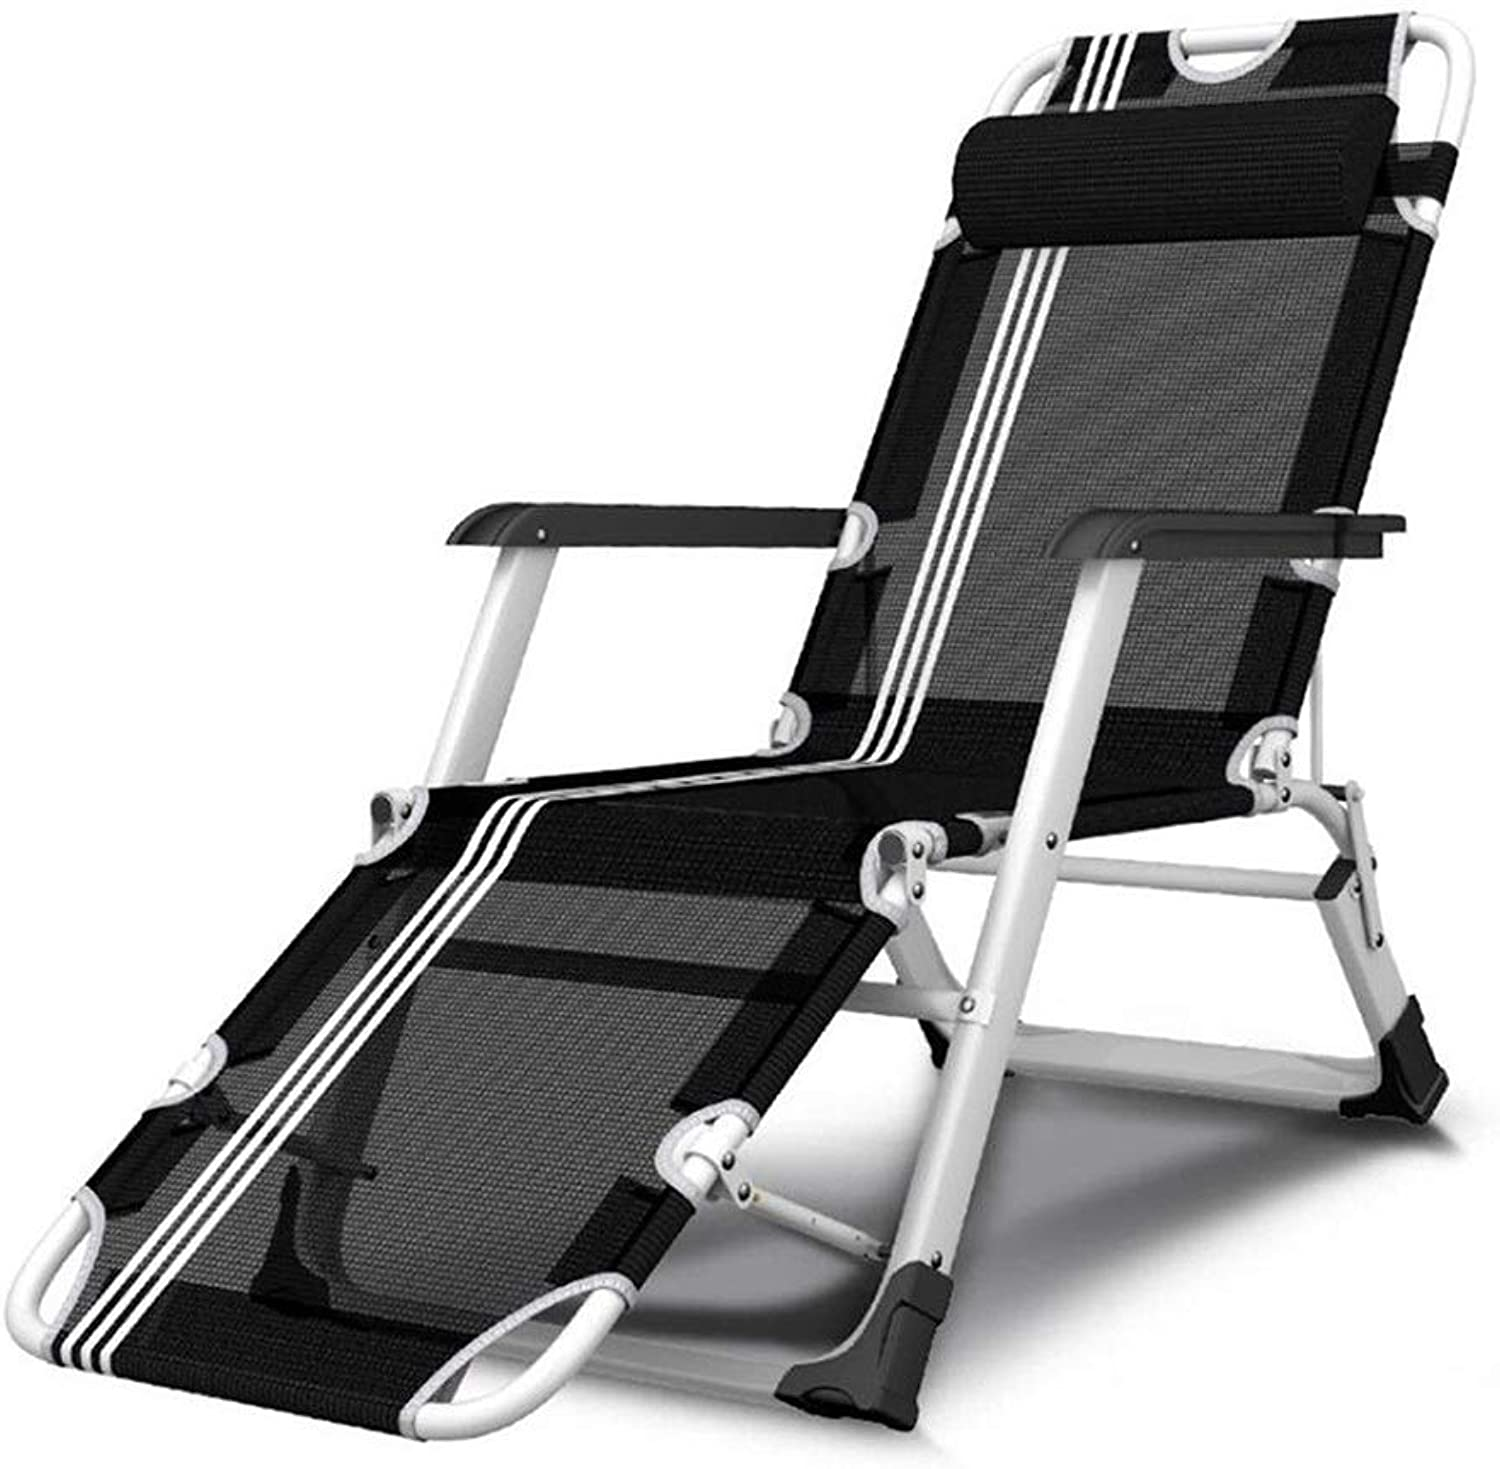 Rocking Lounger Sun Lounger Foldable Reclining Chair with Pillow and Detachable Cushion Garden Beach Outdoor Recliner Adjustable, Black (color   Chair),A